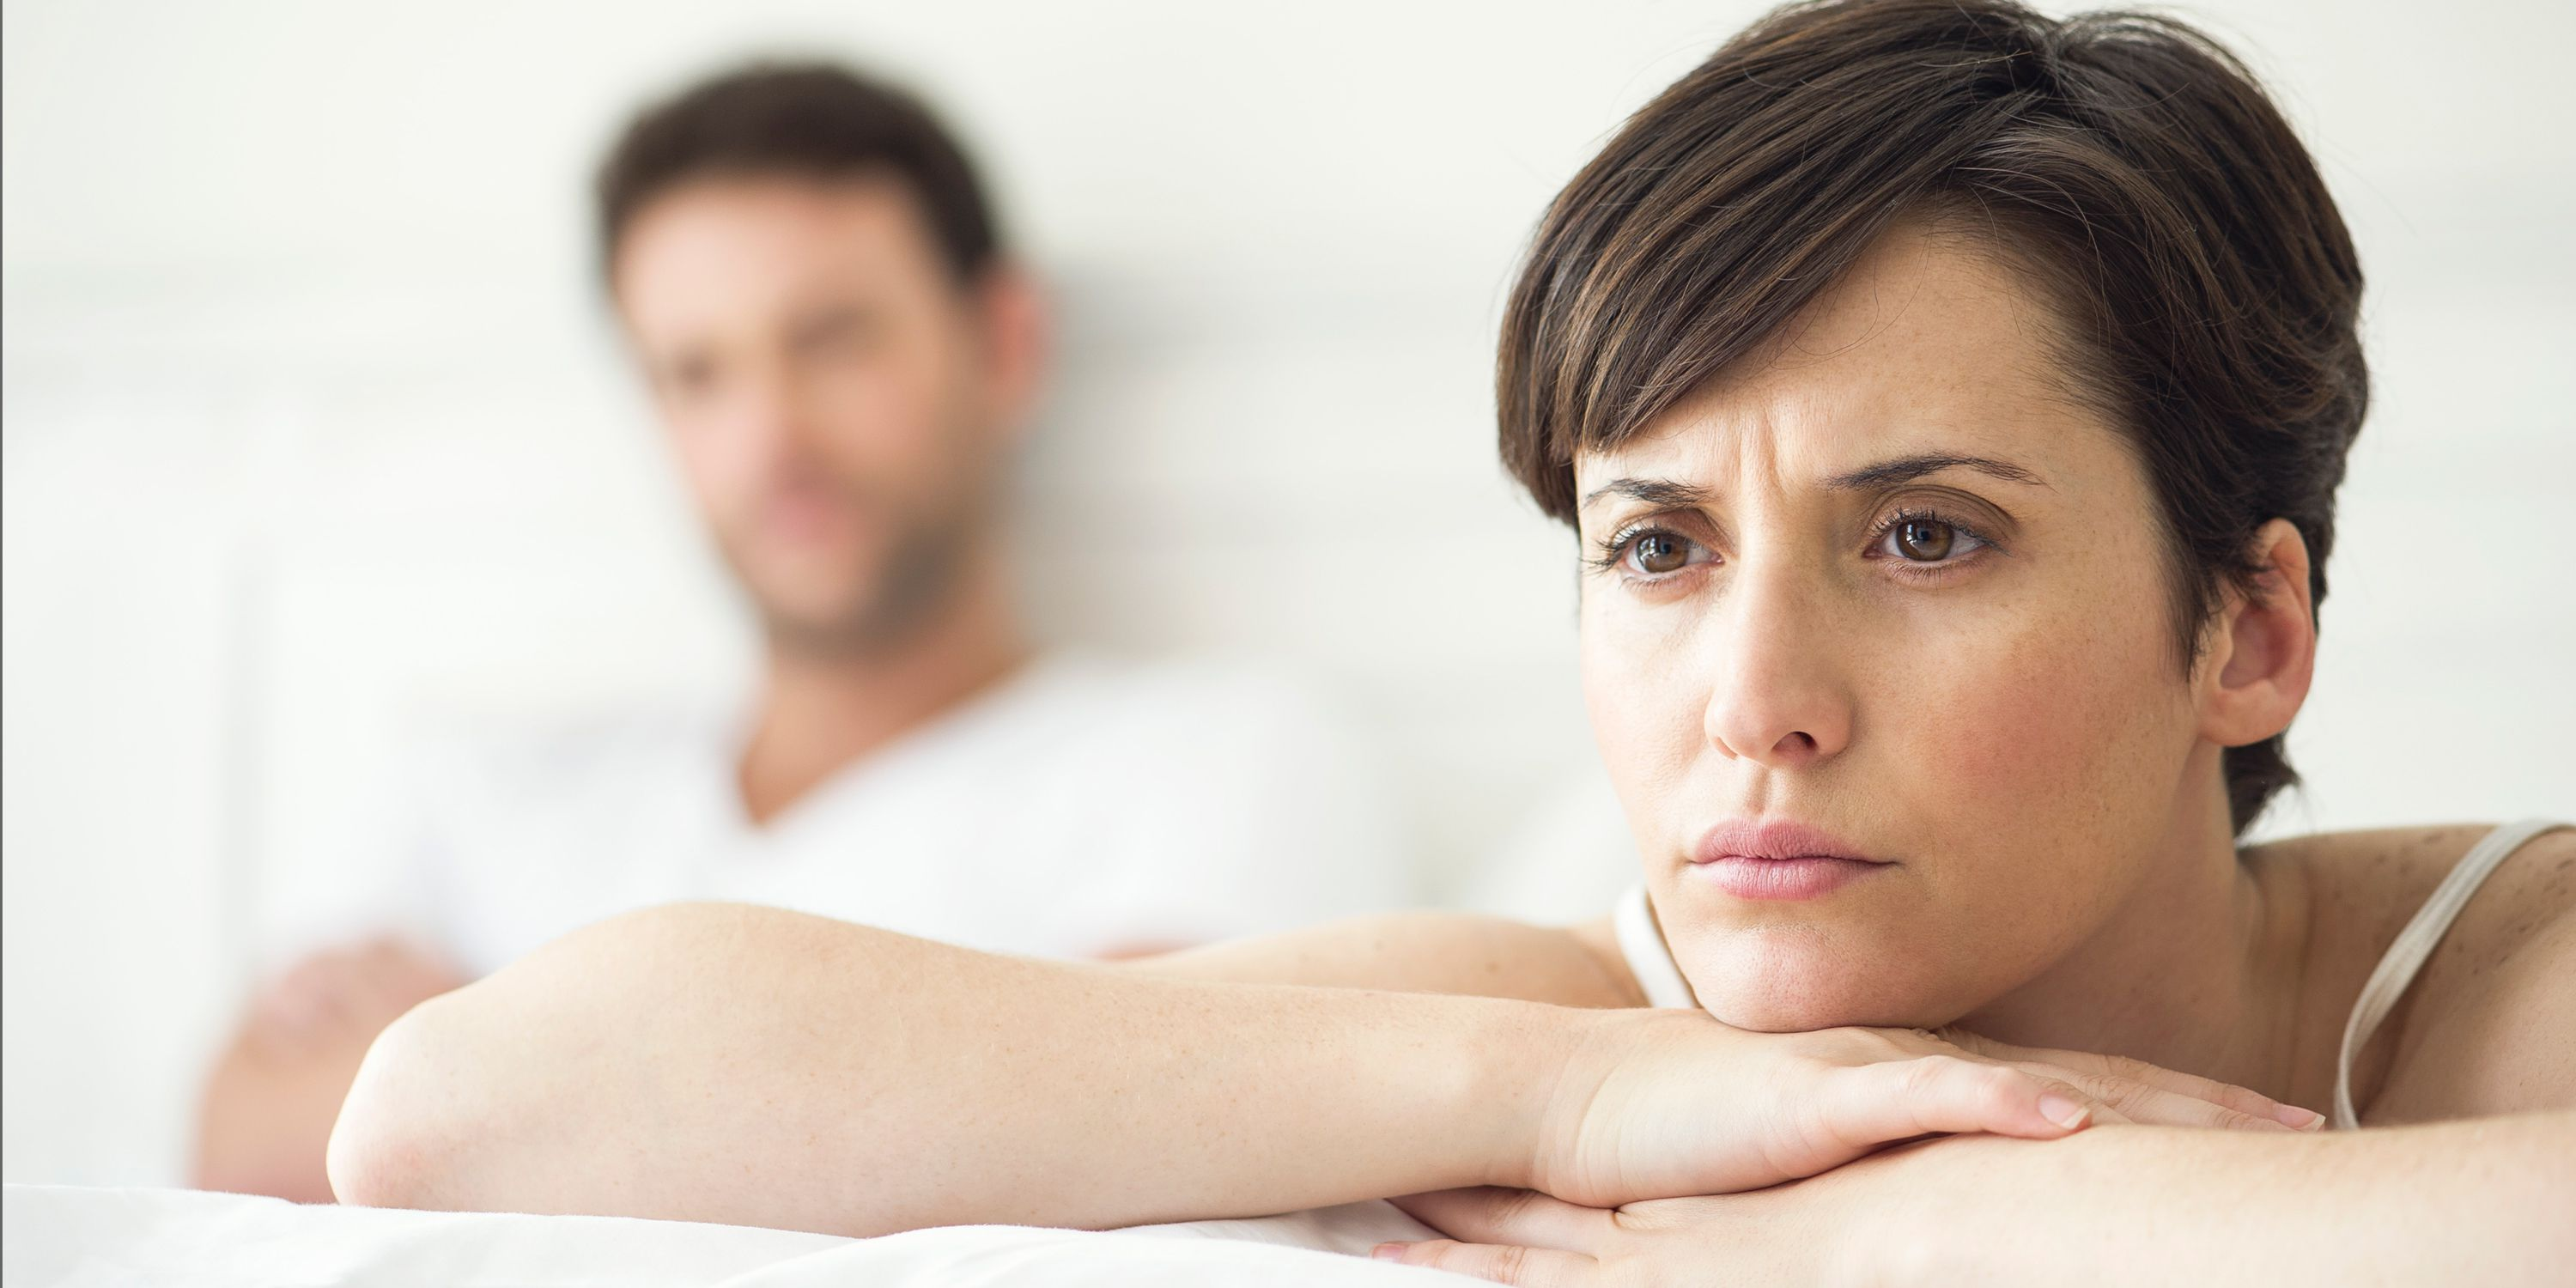 6 Marriage Mistakes Men Make